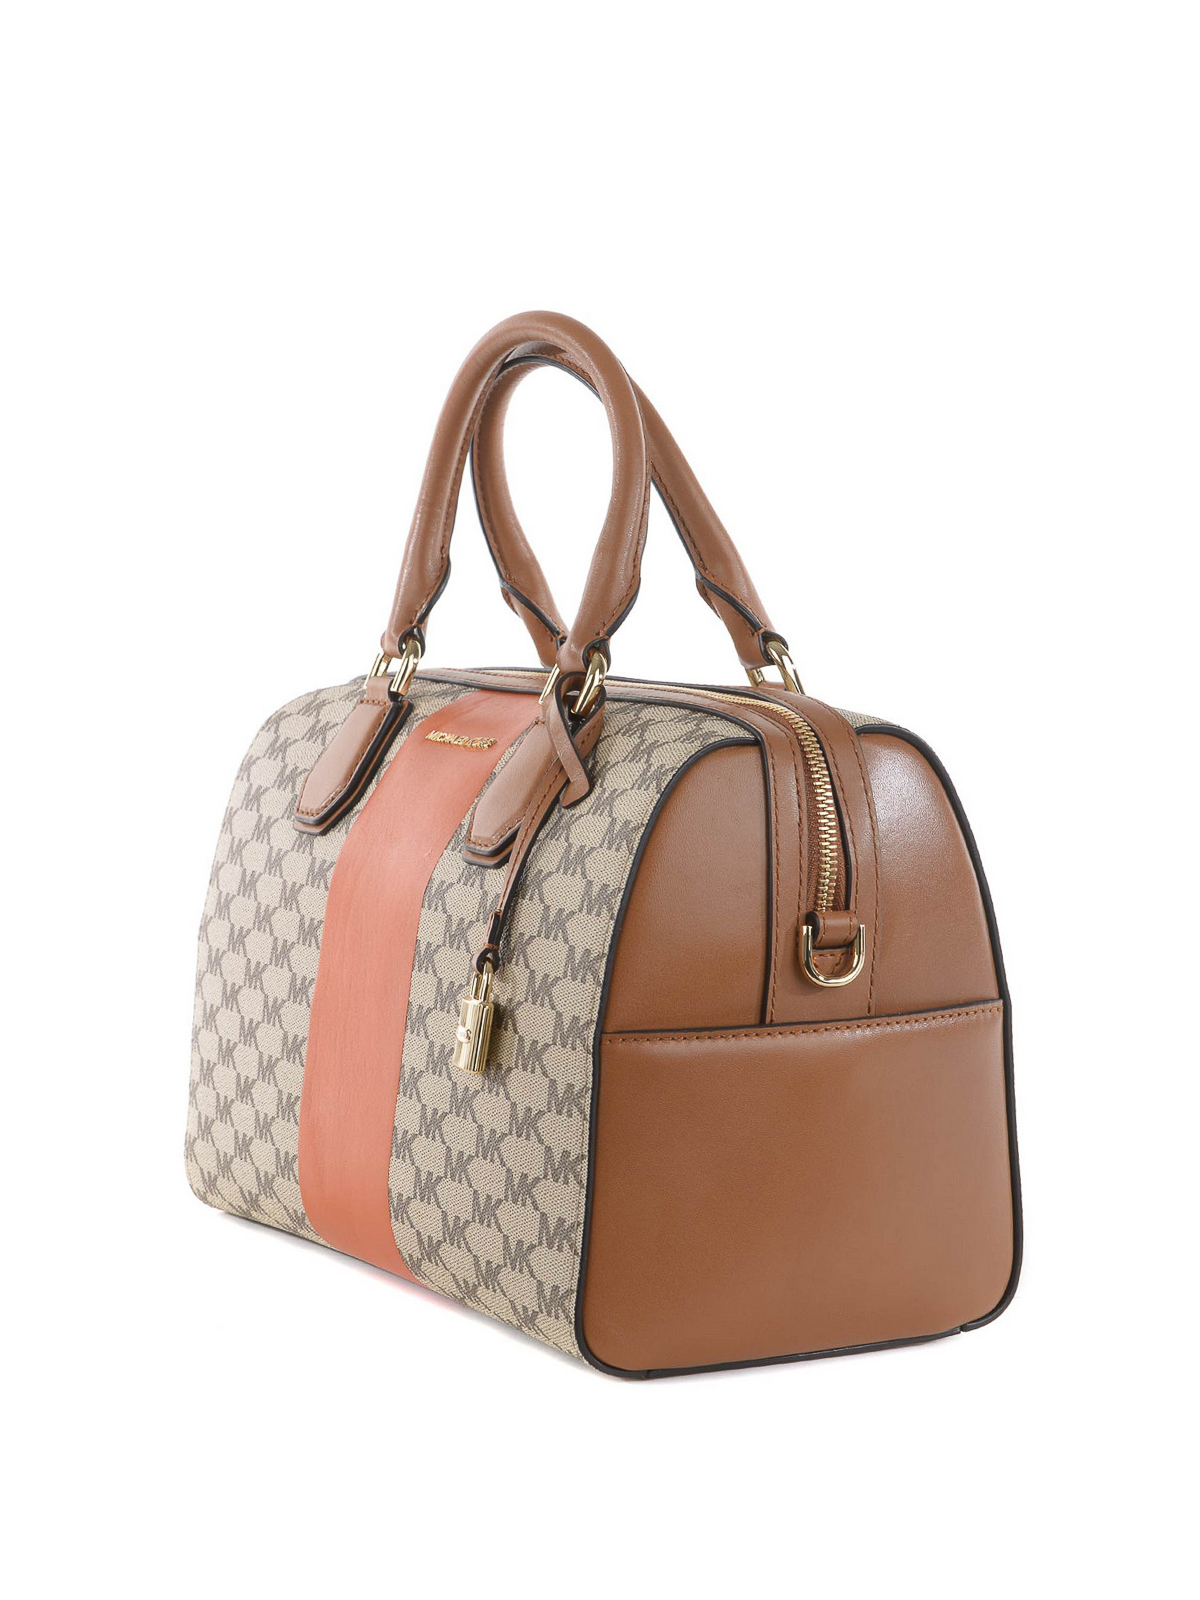 Michael Kors Medium Mercer Bowling Bag Bags